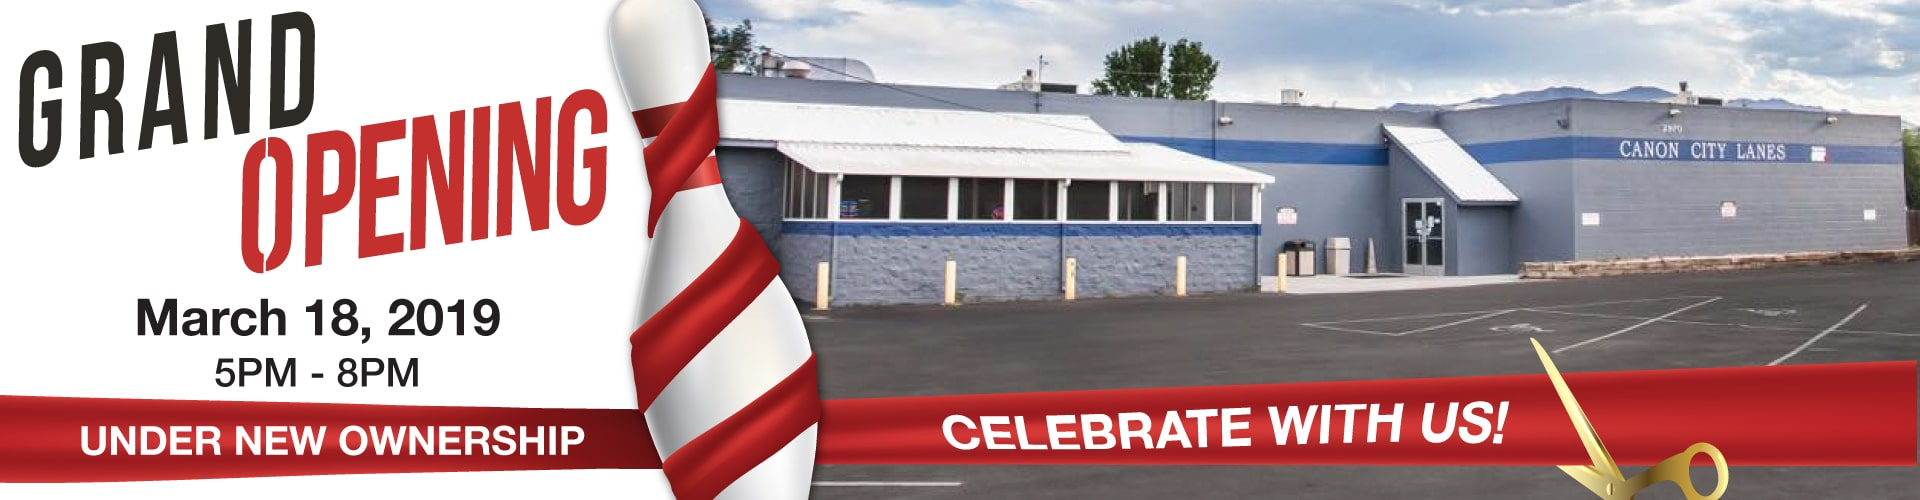 Canon City Lanes Grand Opening